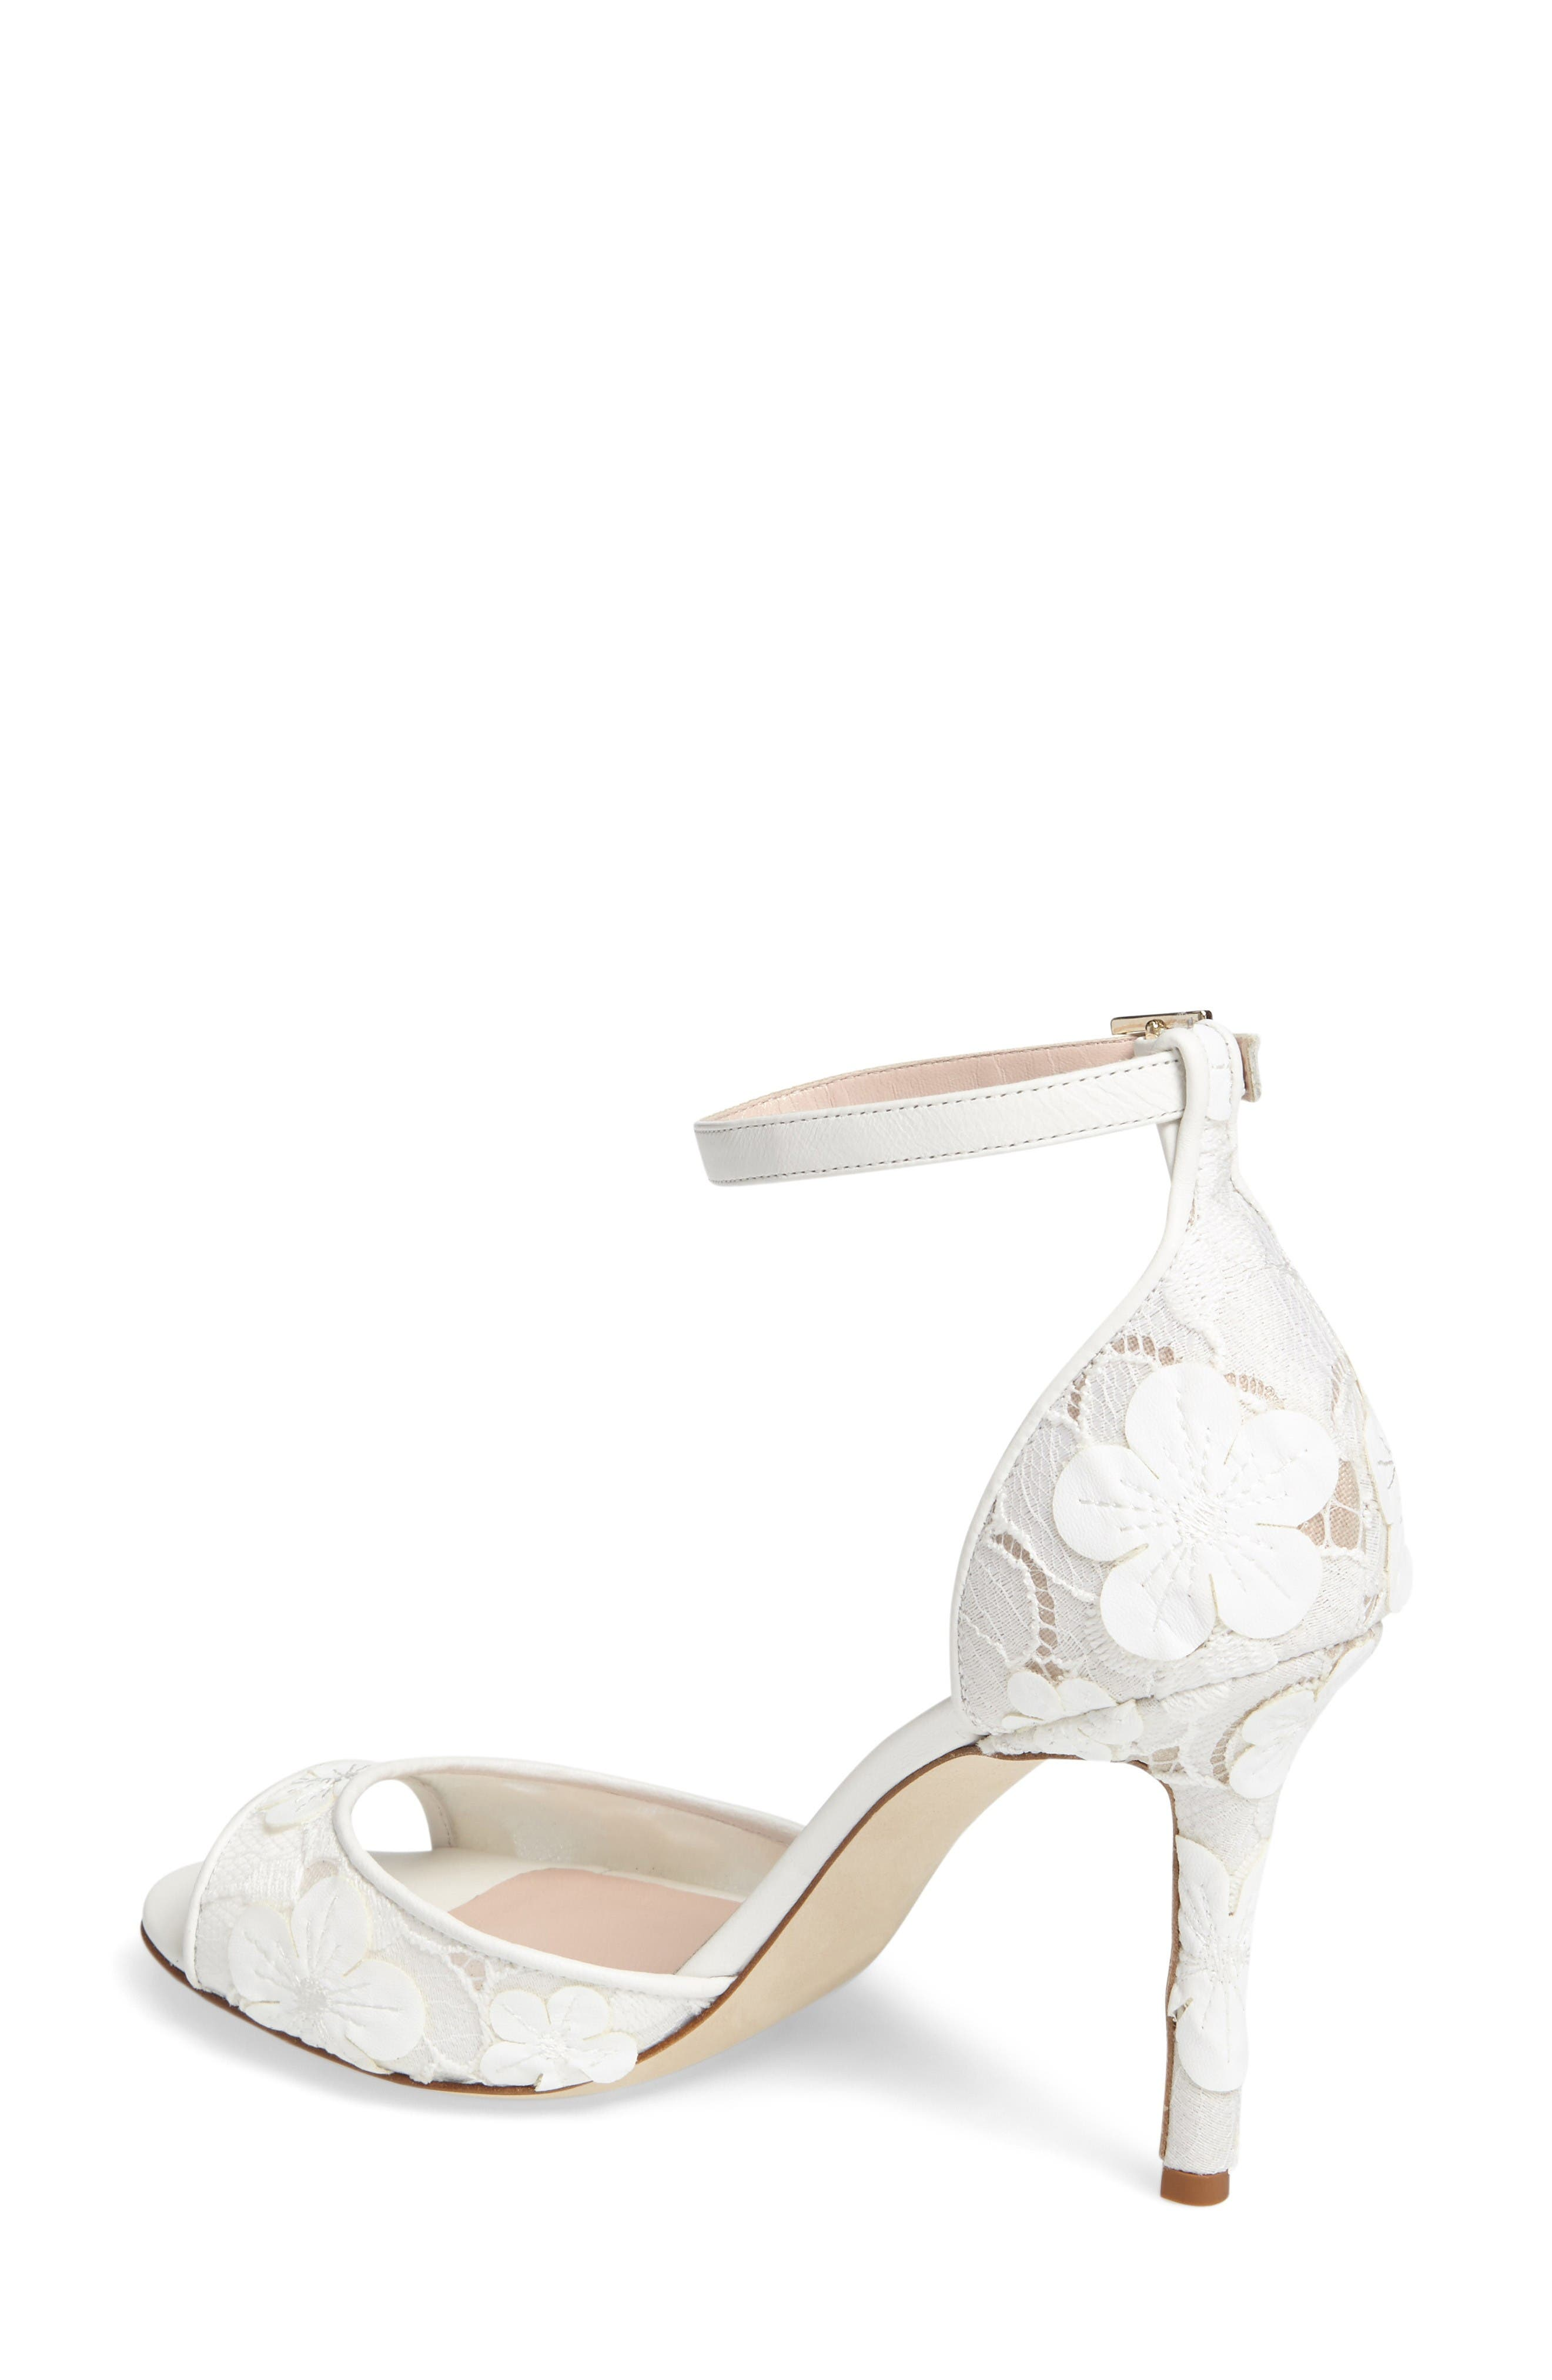 Alternate Image 2  - kate spade new york ideline floral lace sandal (Women)